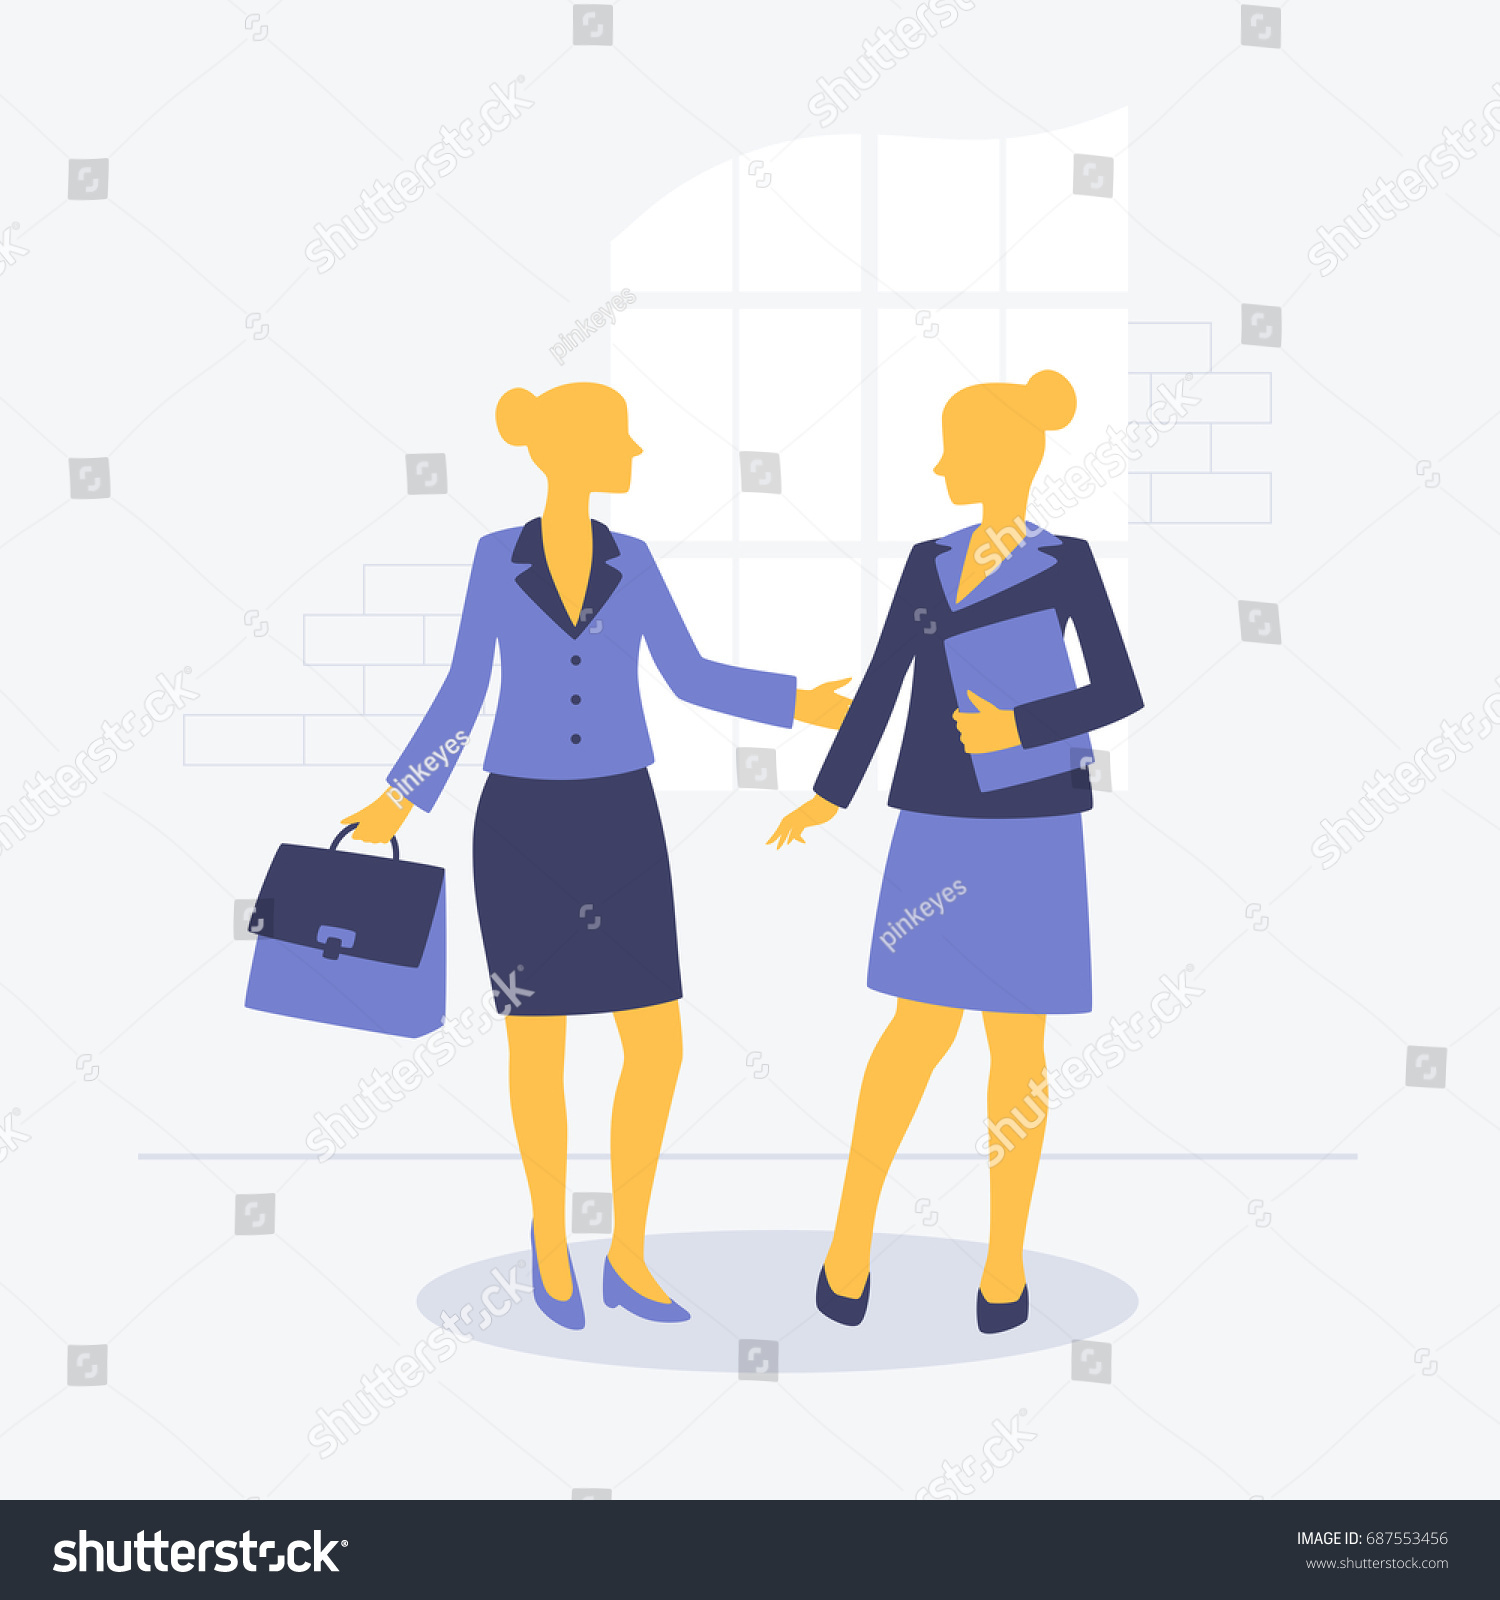 Image result for a women shaking hands at a interview cartoon